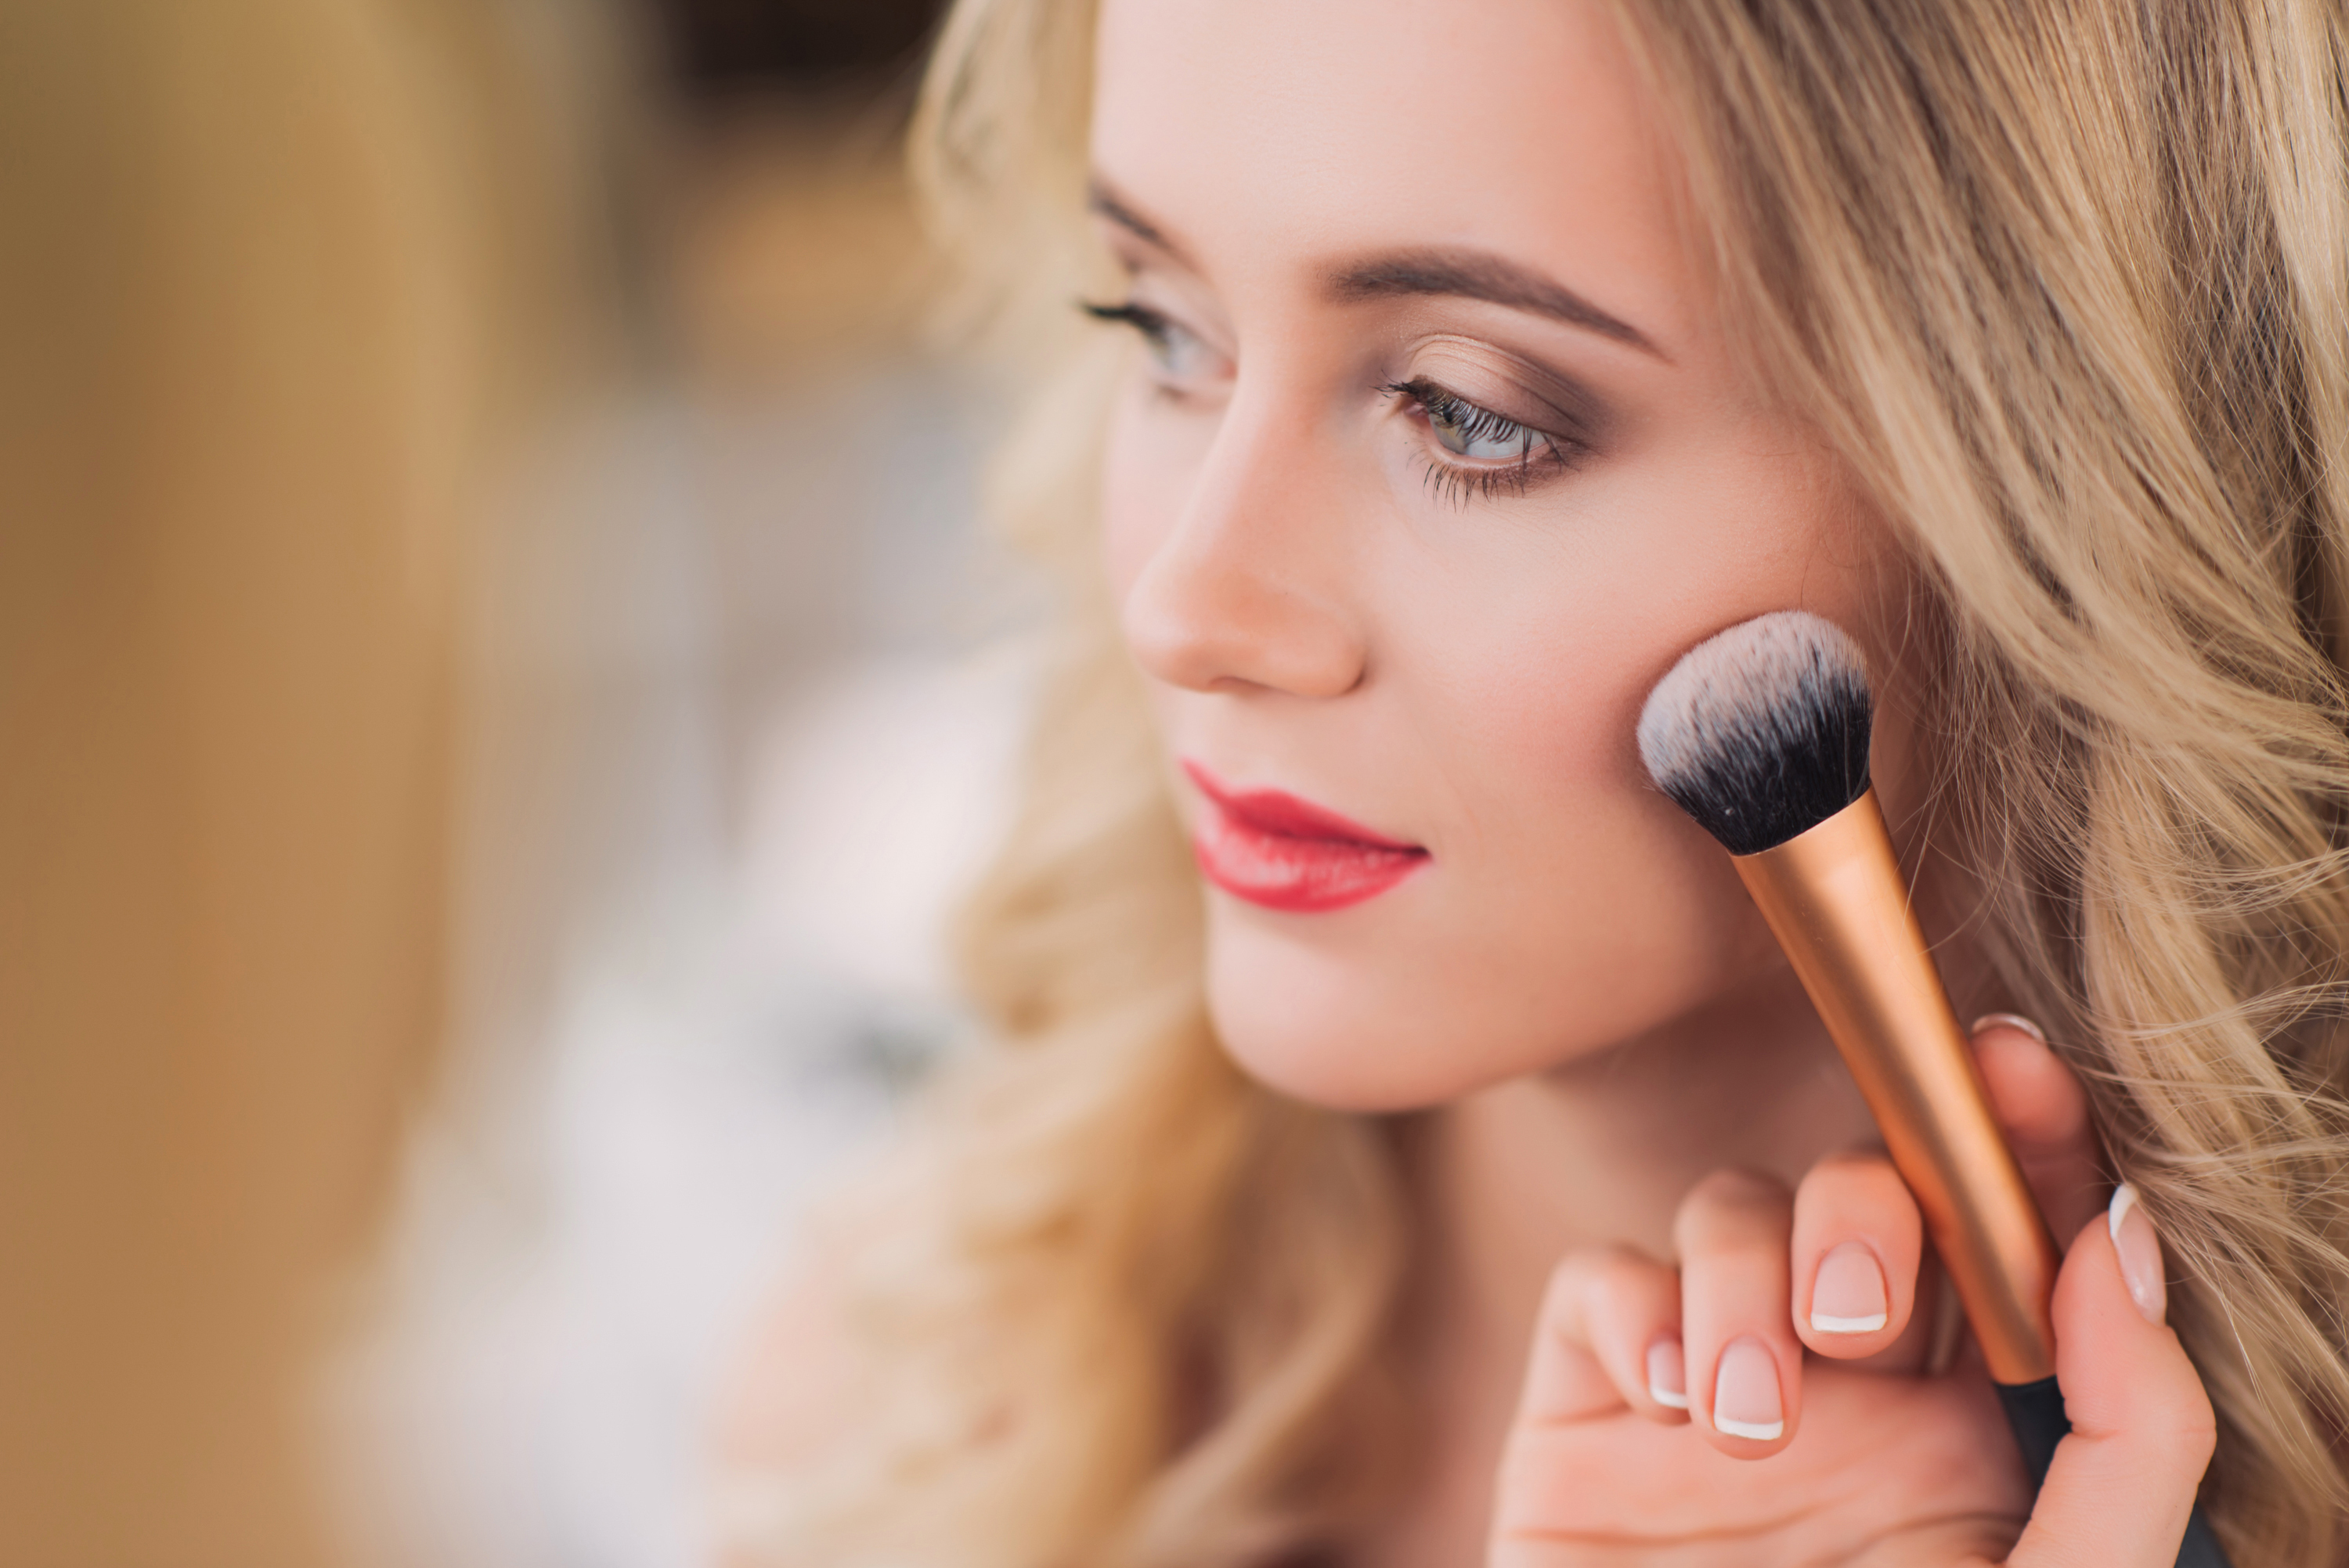 a makeup artist using a blush brush on a female client